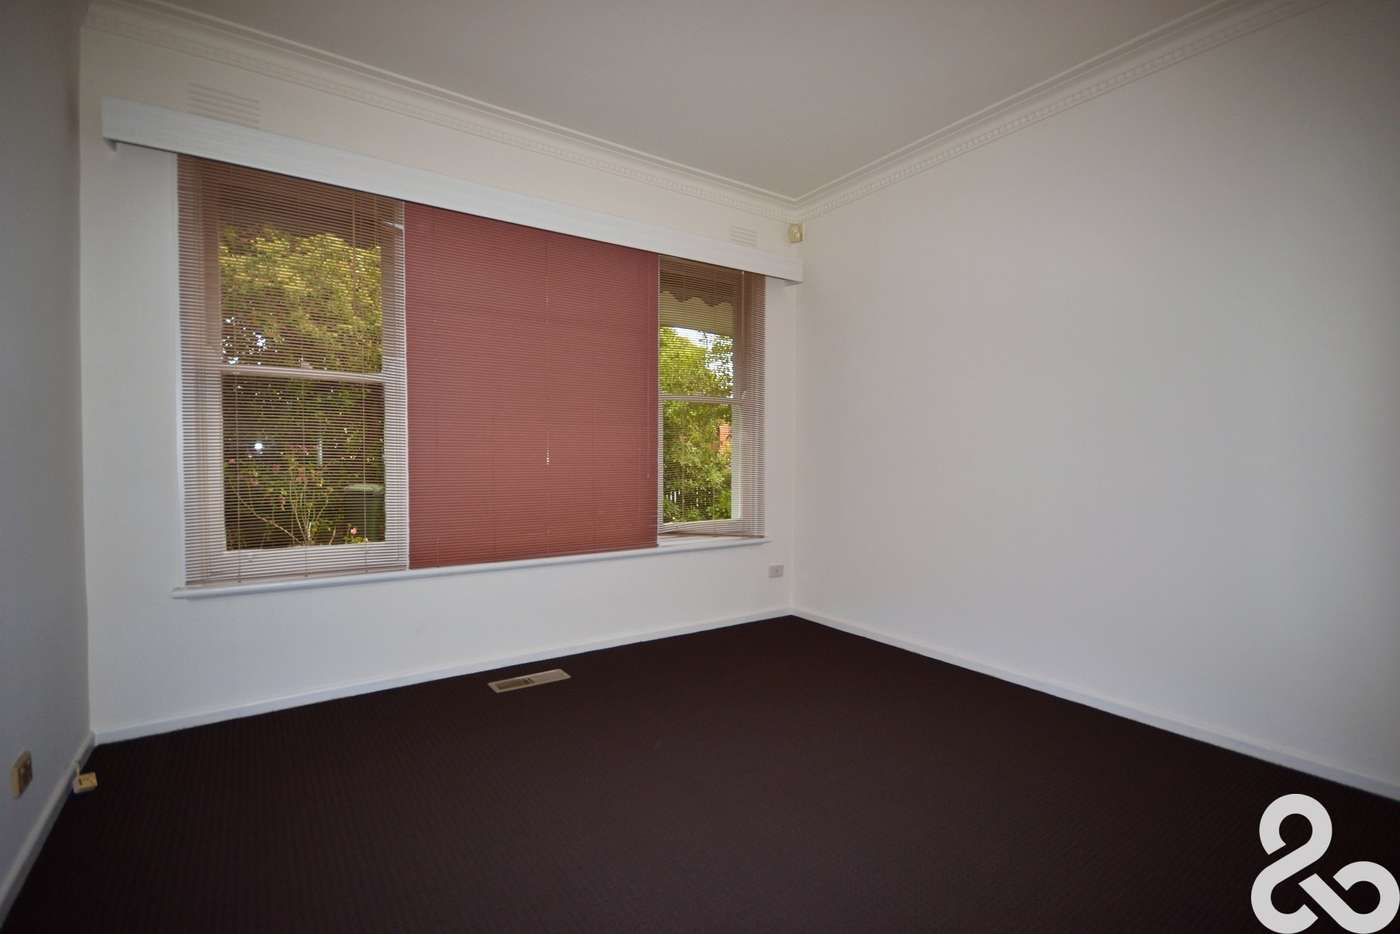 Sixth view of Homely house listing, 118 Bruce Street, Preston VIC 3072